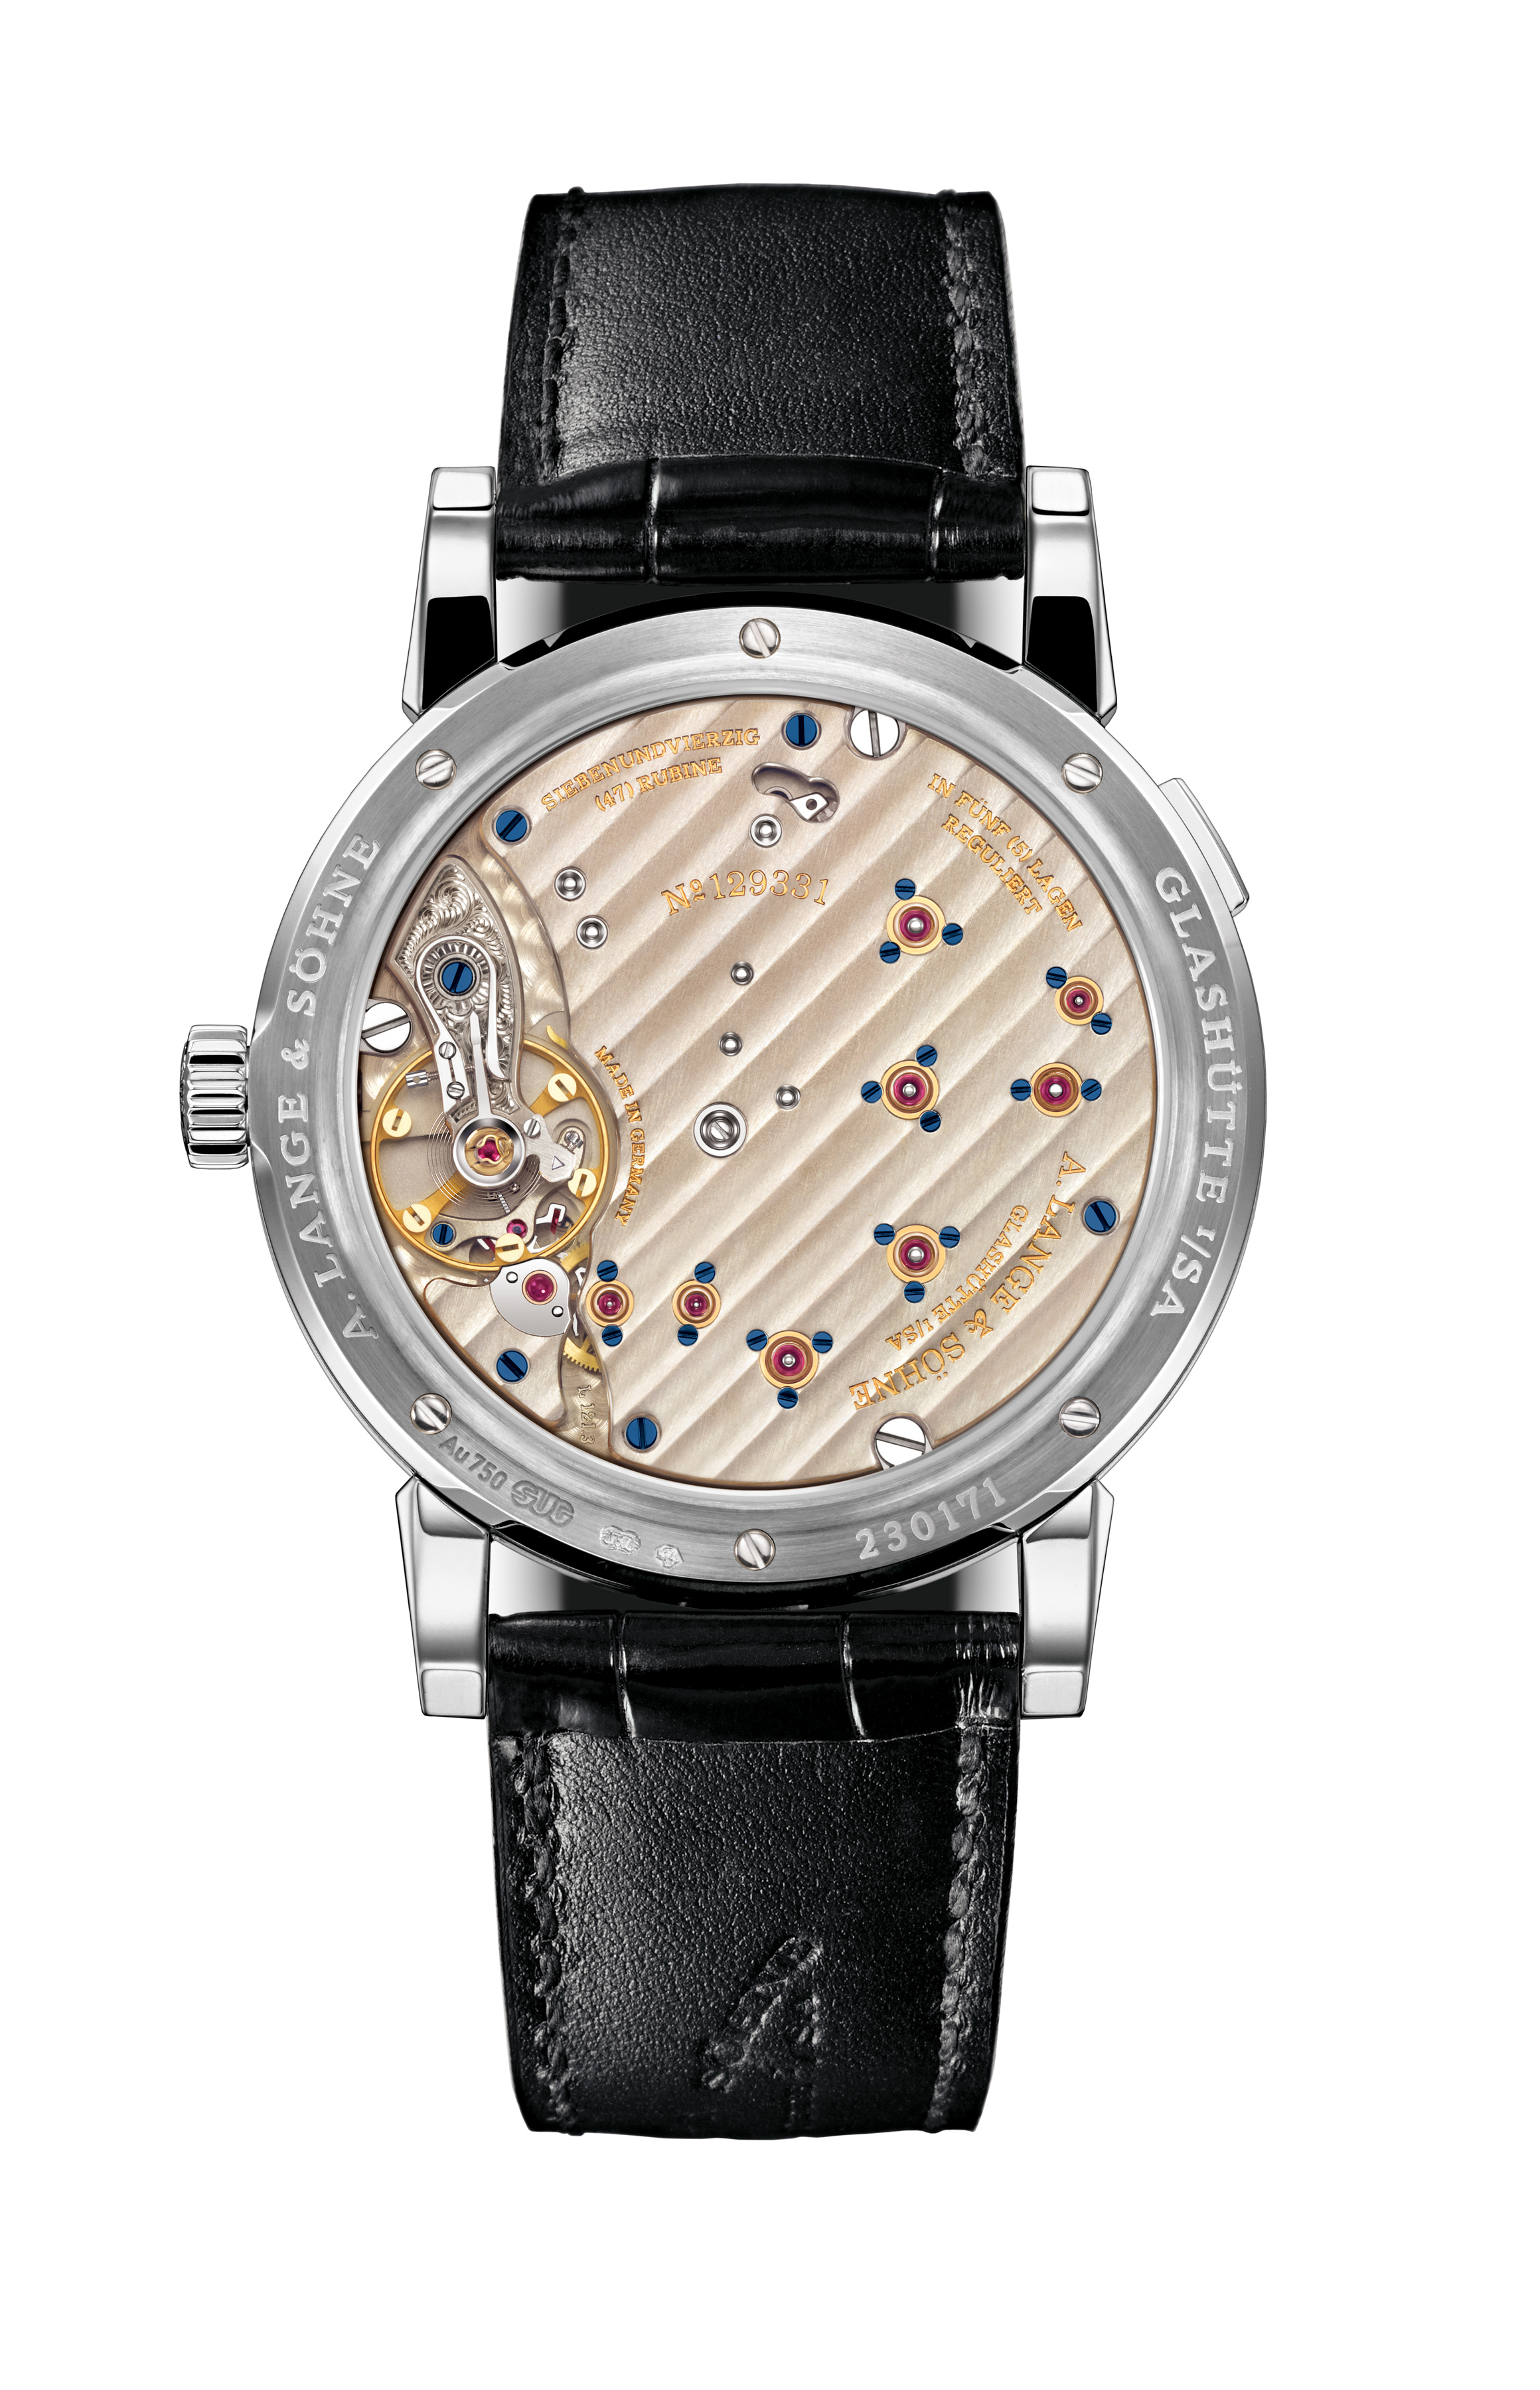 A.L&S Lange 1 Moon Phase 192.029